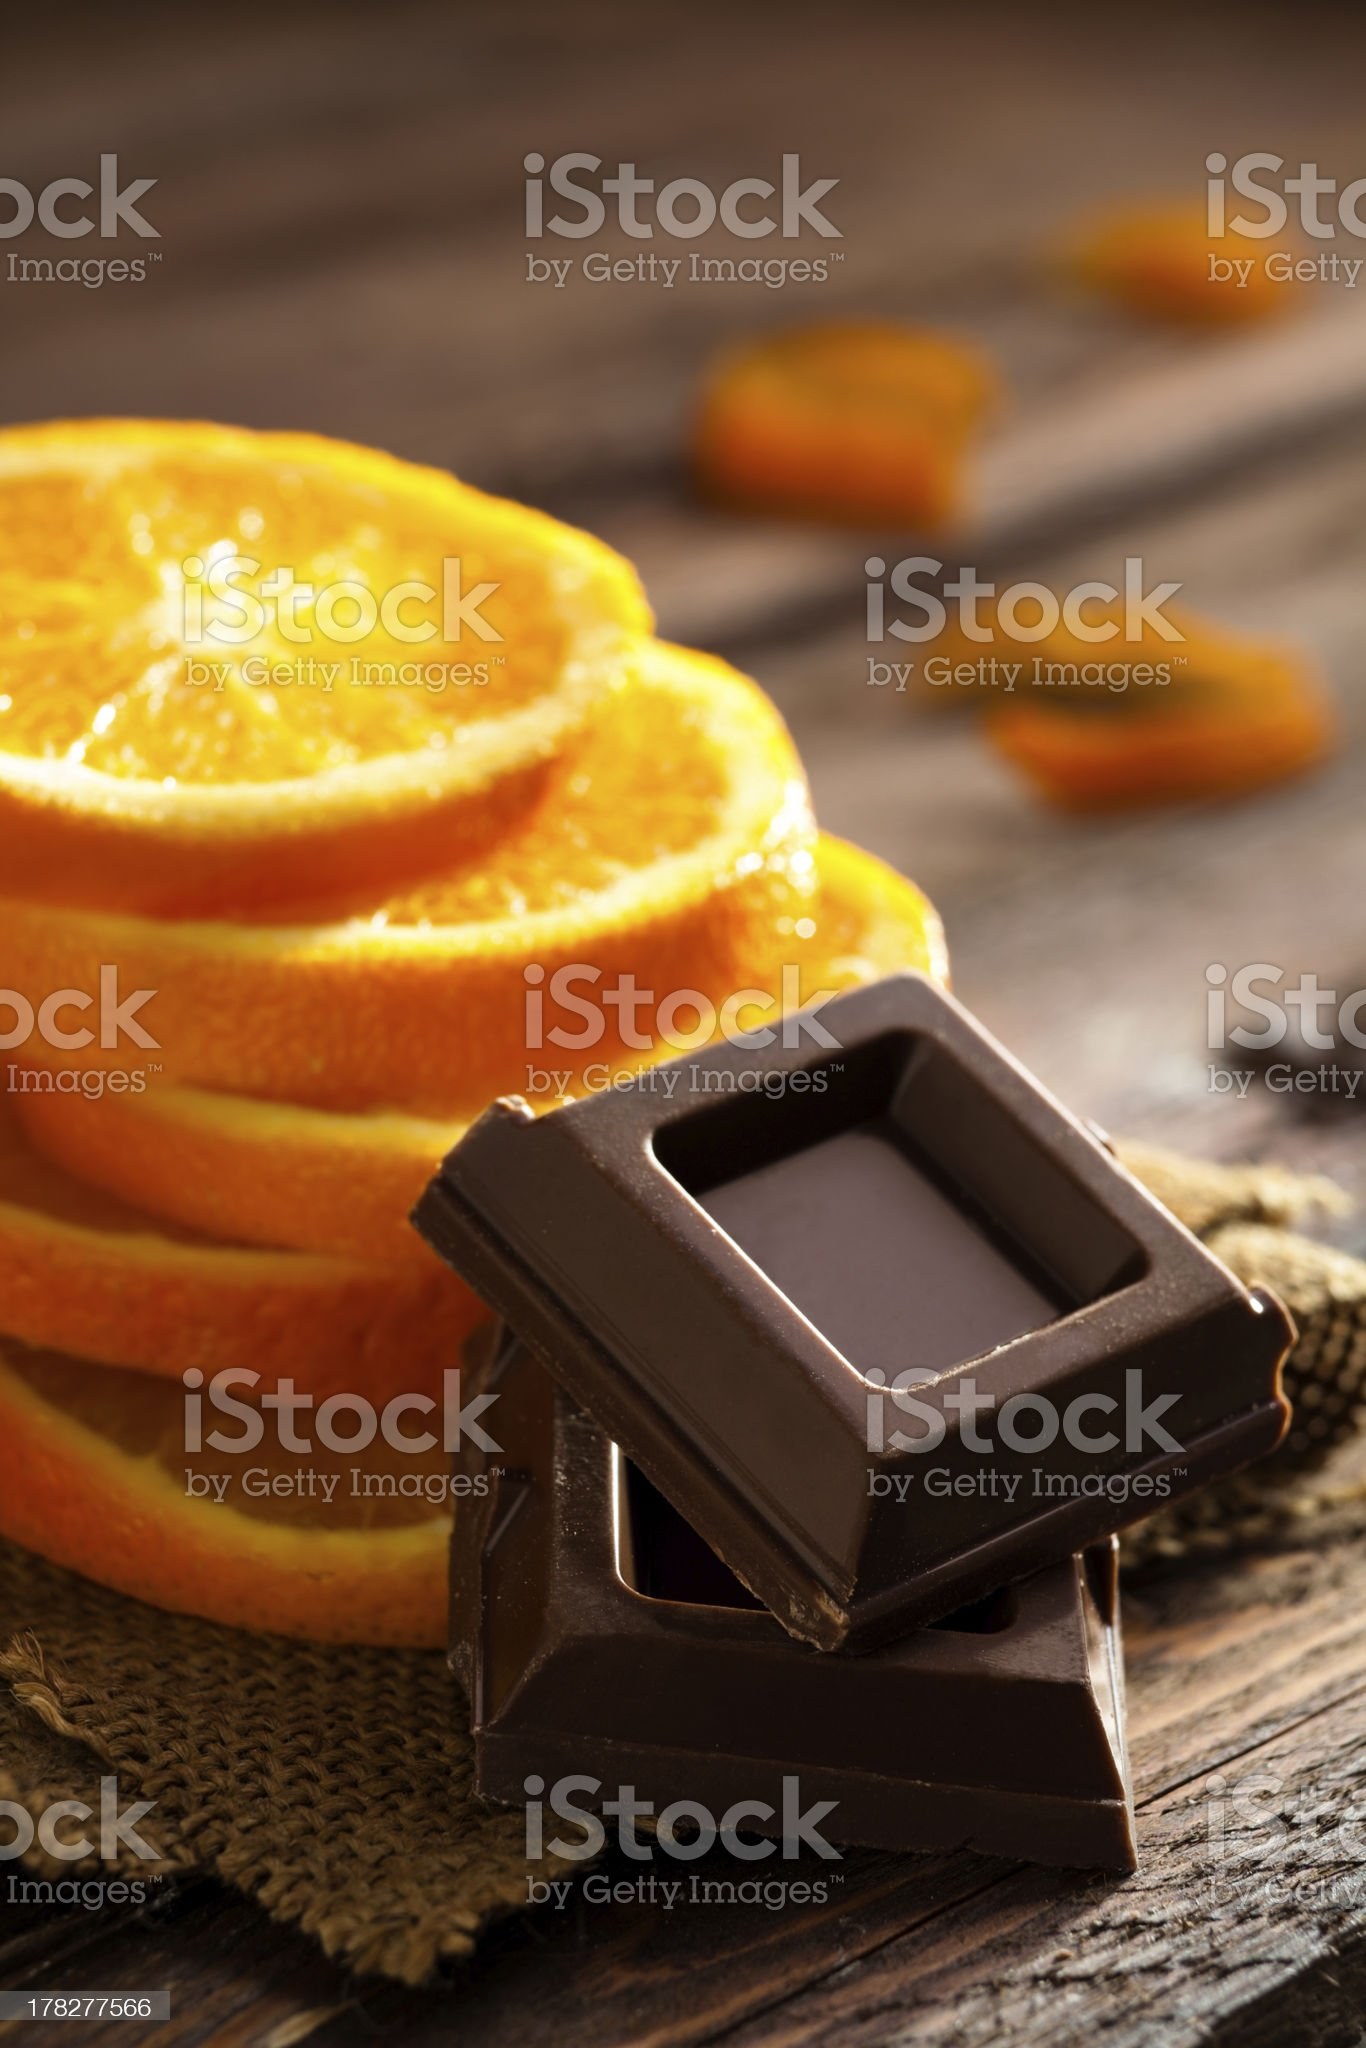 Chocolate and Orange royalty-free stock photo